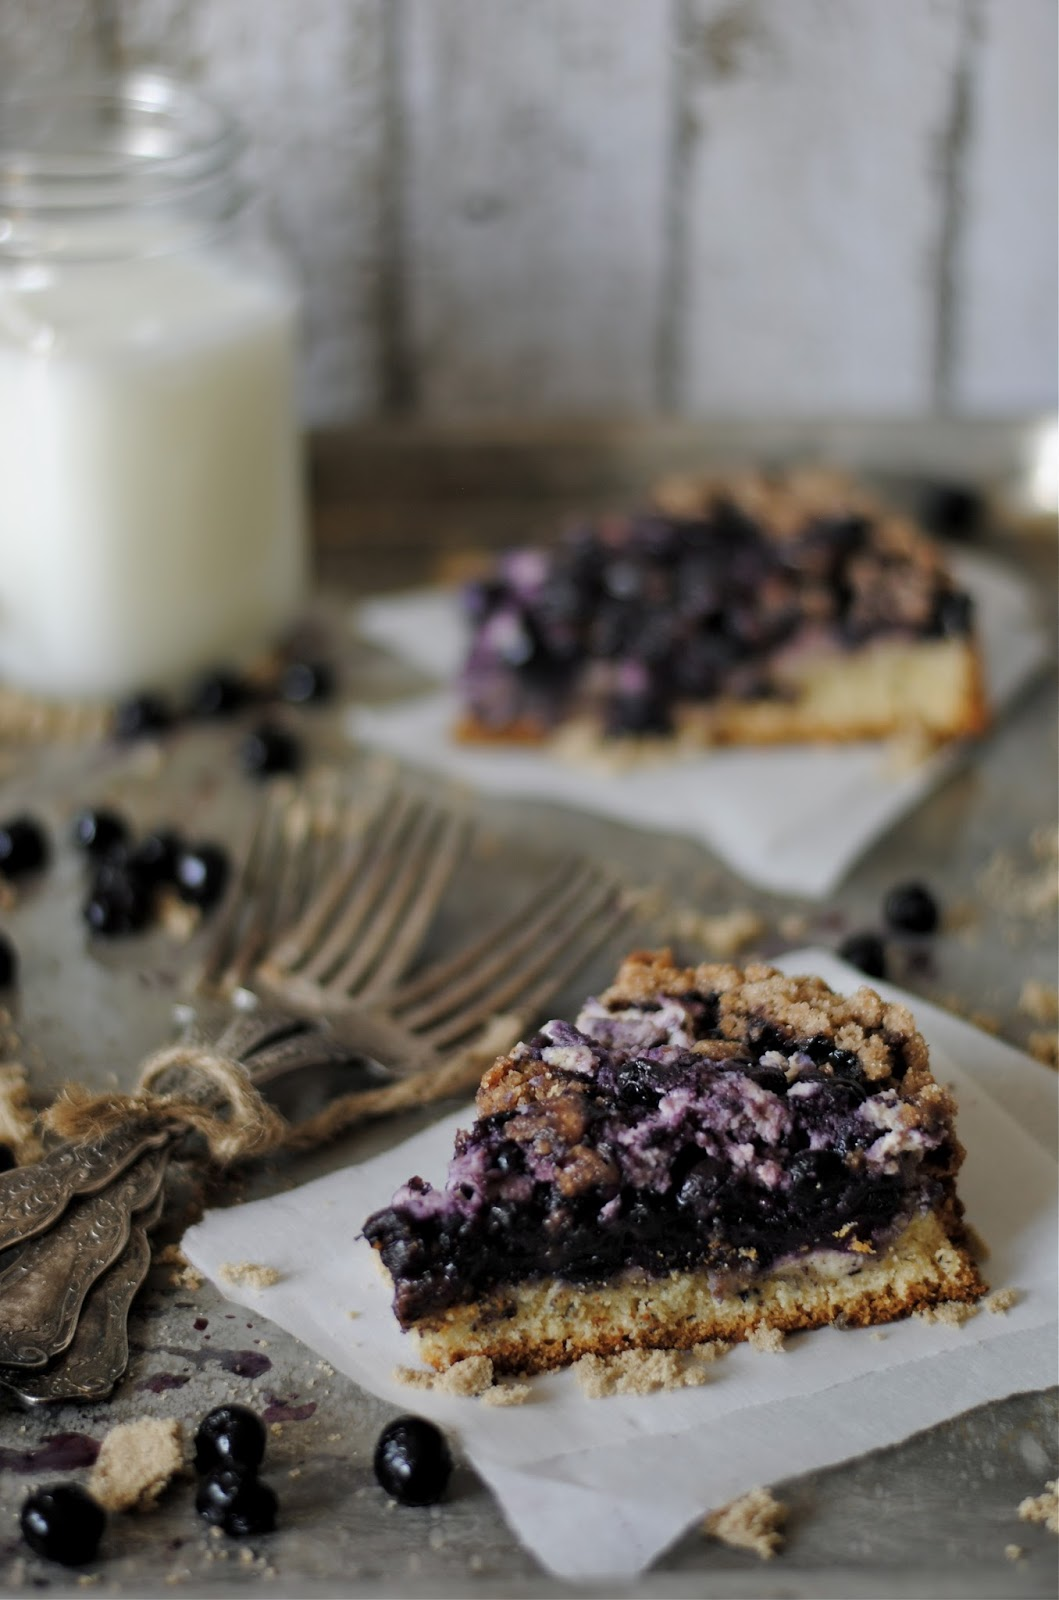 Blueberry Cream Cheese Coffee Cake - How To: Simplify